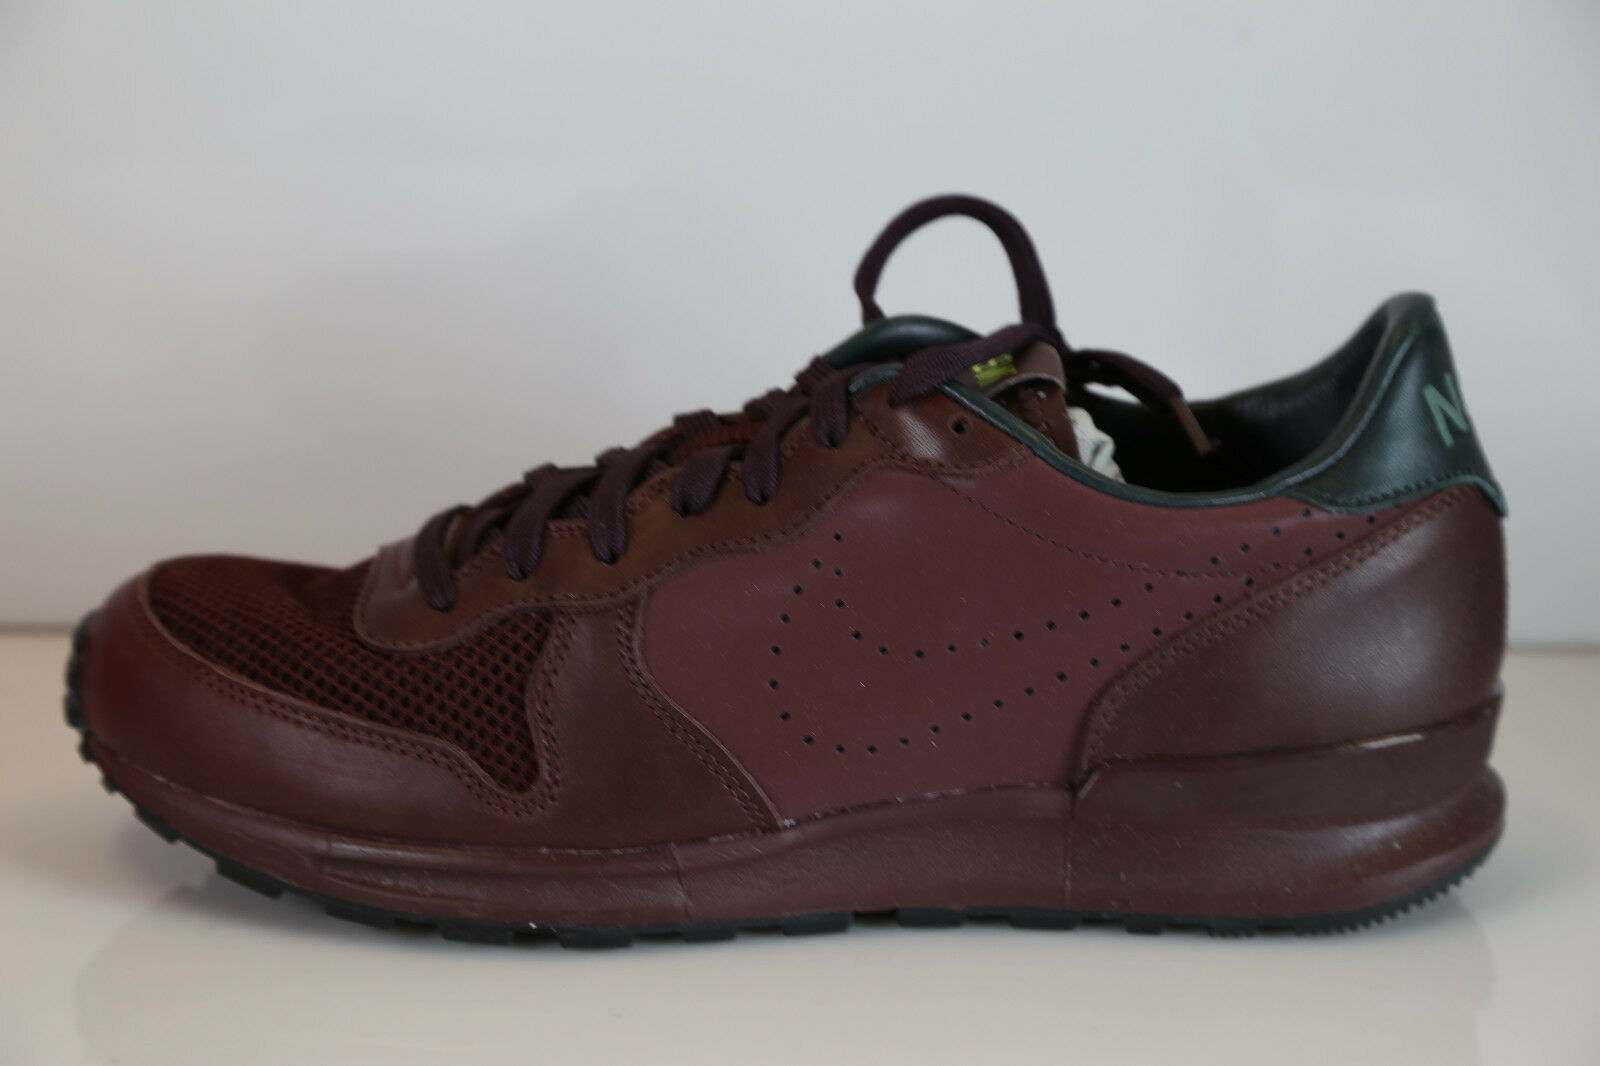 nike air solstice 8-11.5 prime nsw nrg 543510-200 543510-200 nrg taille libre 7cbbab